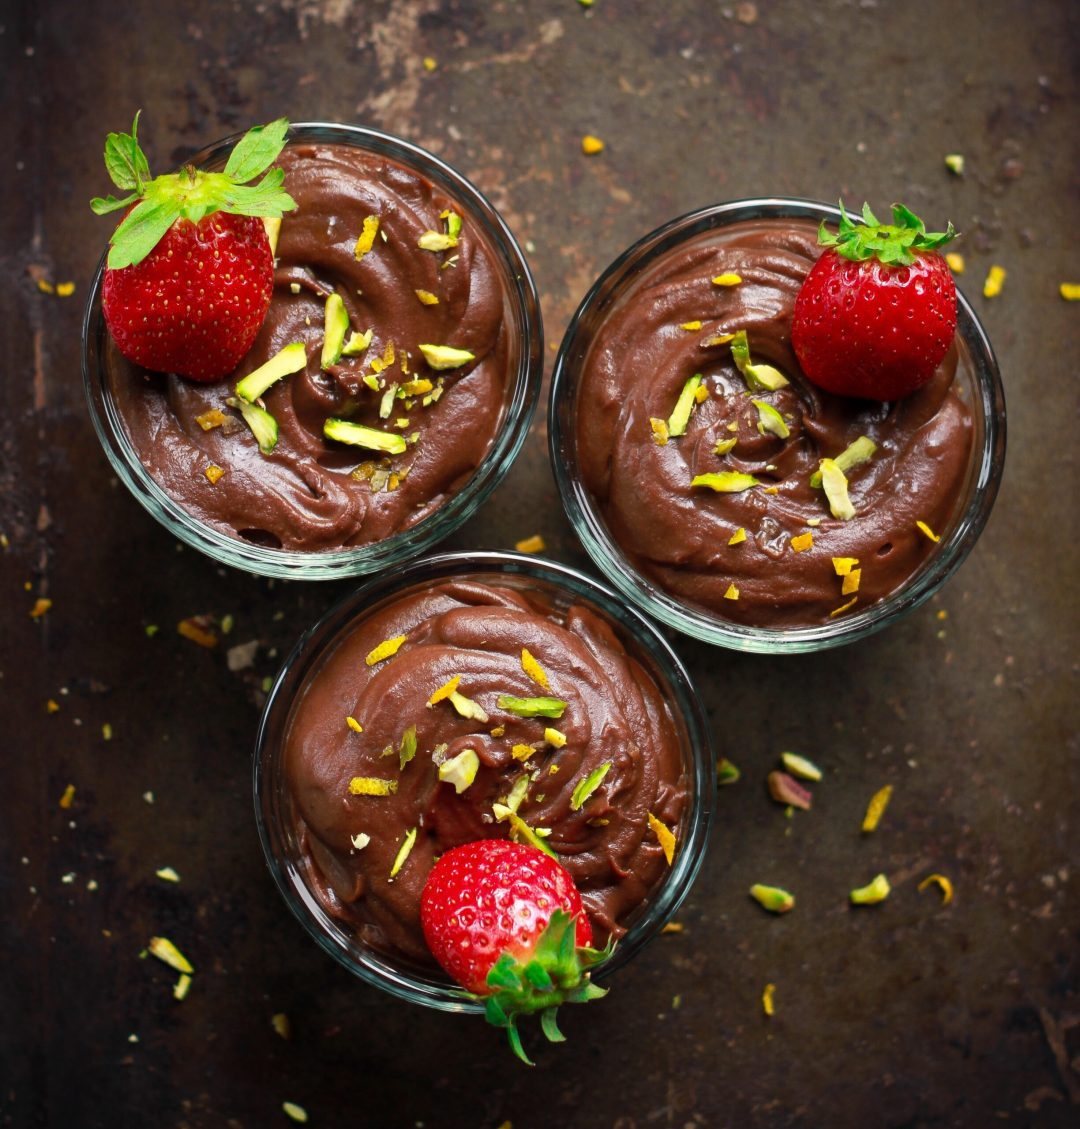 Sweet Potato Chocolate Pudding easy vegan glutenfree refined sugarfree dessert